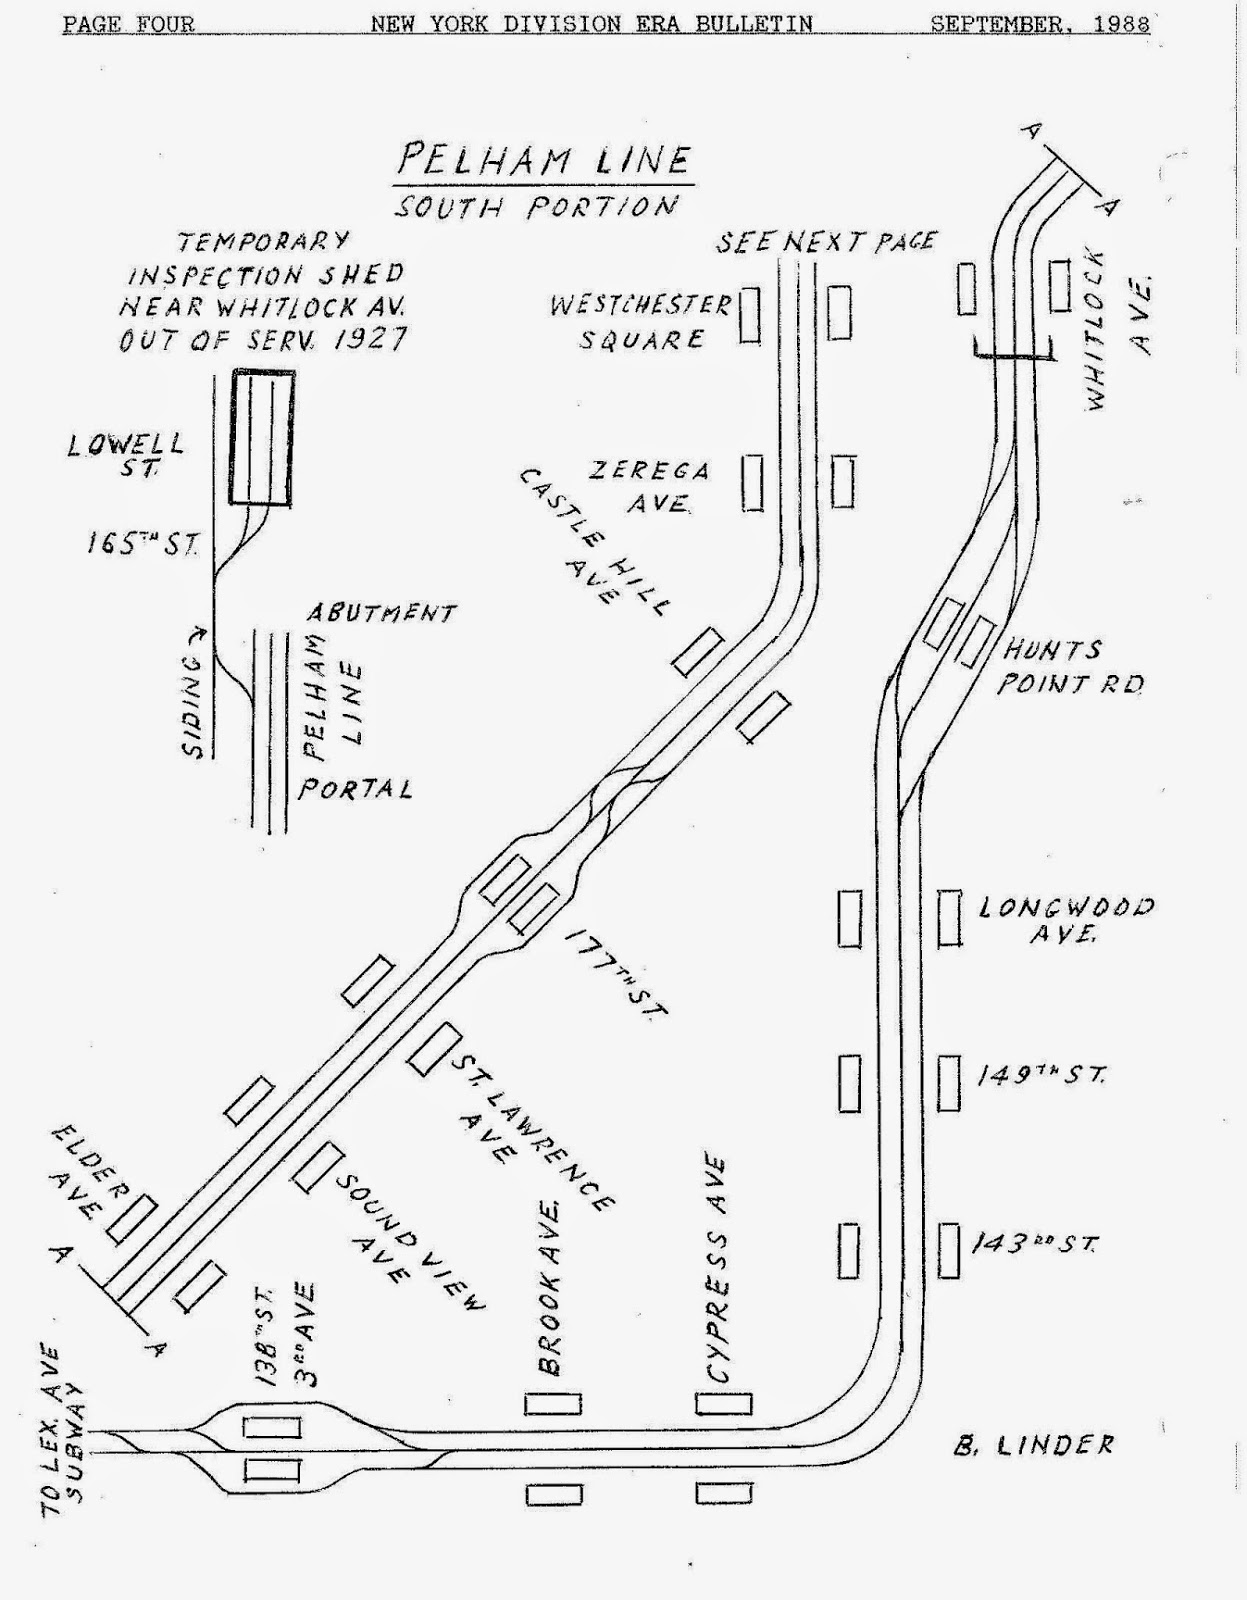 Nyc Transit Forums Rss Feed Subway Wiring Schematic Pelham South